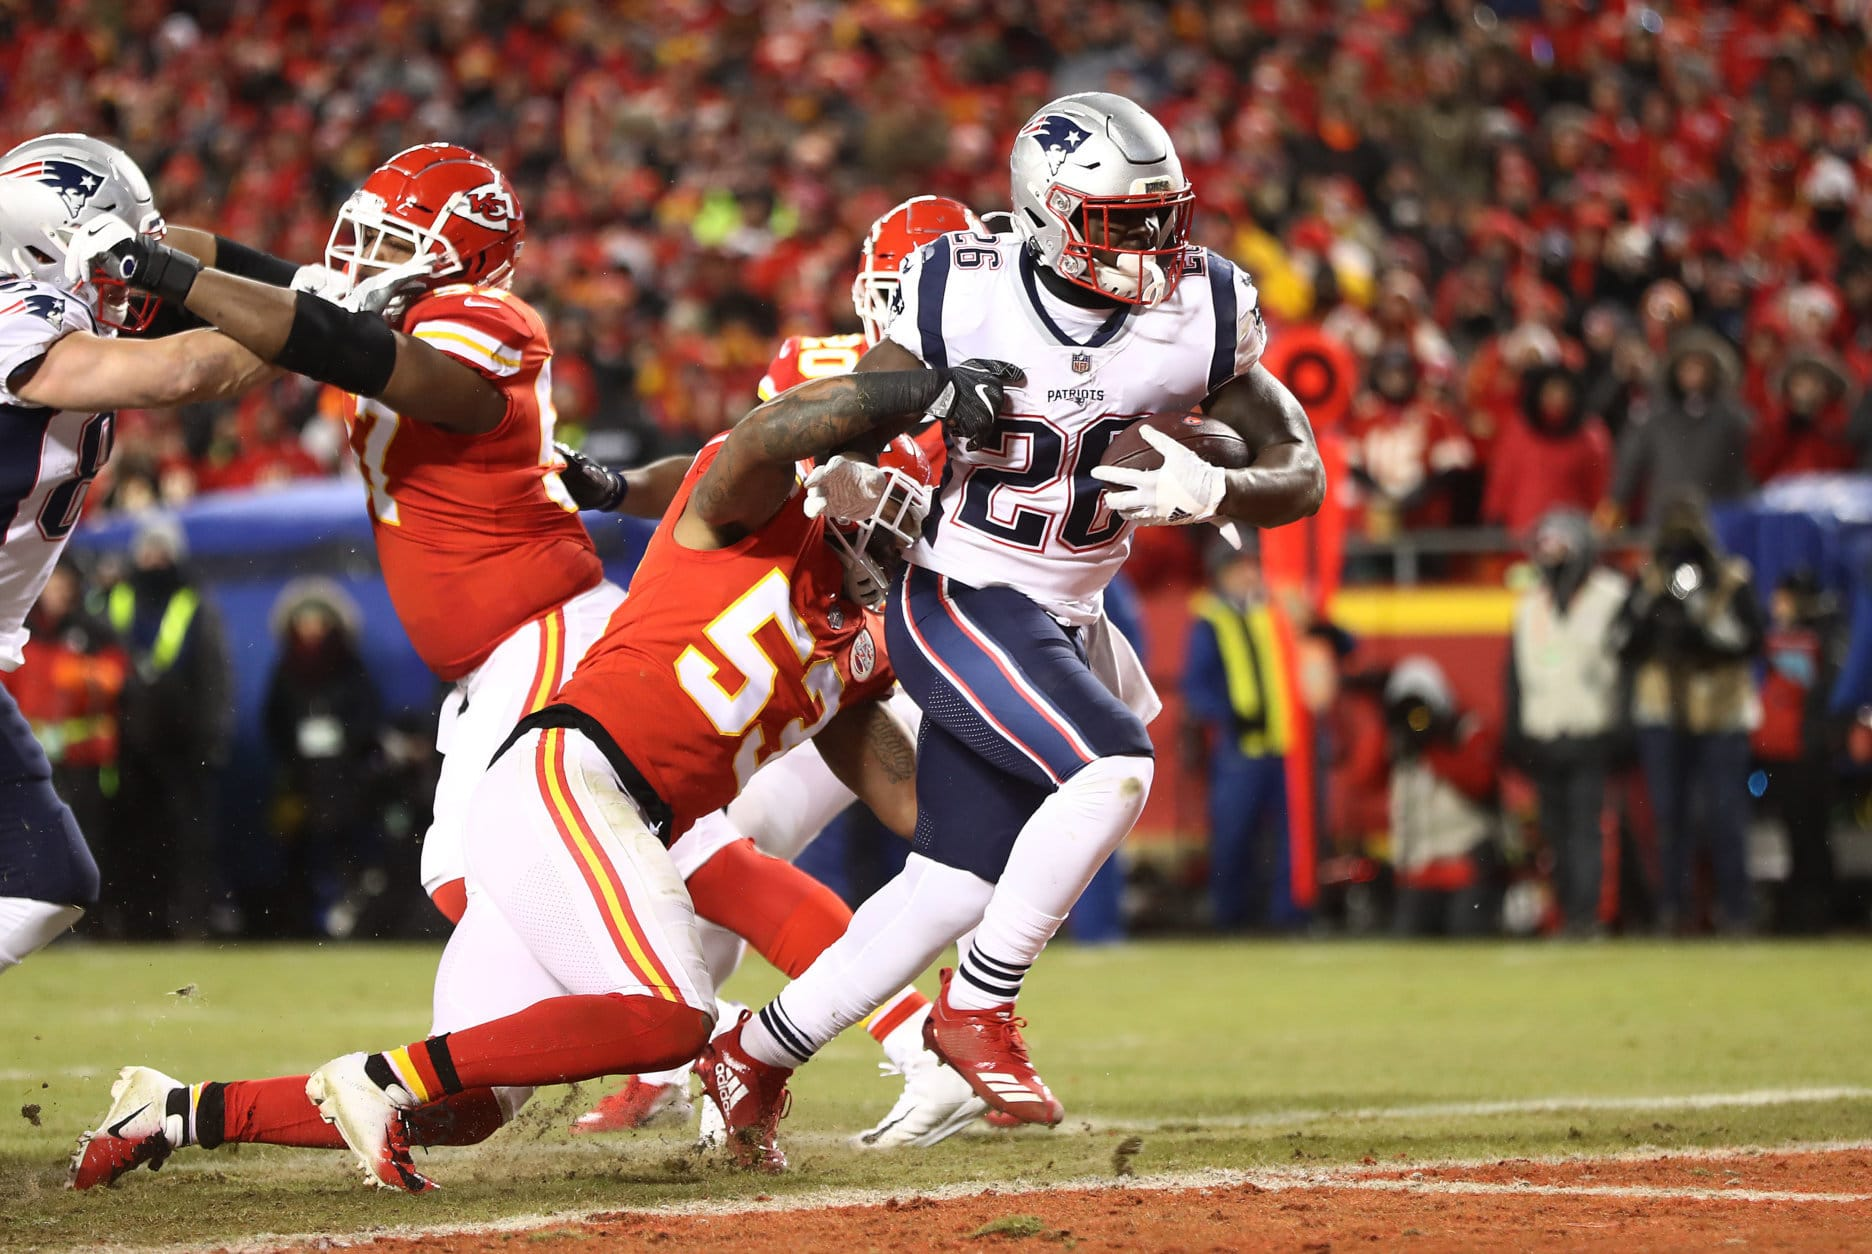 KANSAS CITY, MISSOURI - JANUARY 20:  Sony Michel #26 of the New England Patriots rushes for a 1-yard touchdown in the first quarter as Anthony Hitchens #53 of the Kansas City Chiefs attempts to tackle him during the AFC Championship Game at Arrowhead Stadium on January 20, 2019 in Kansas City, Missouri. (Photo by Jamie Squire/Getty Images)